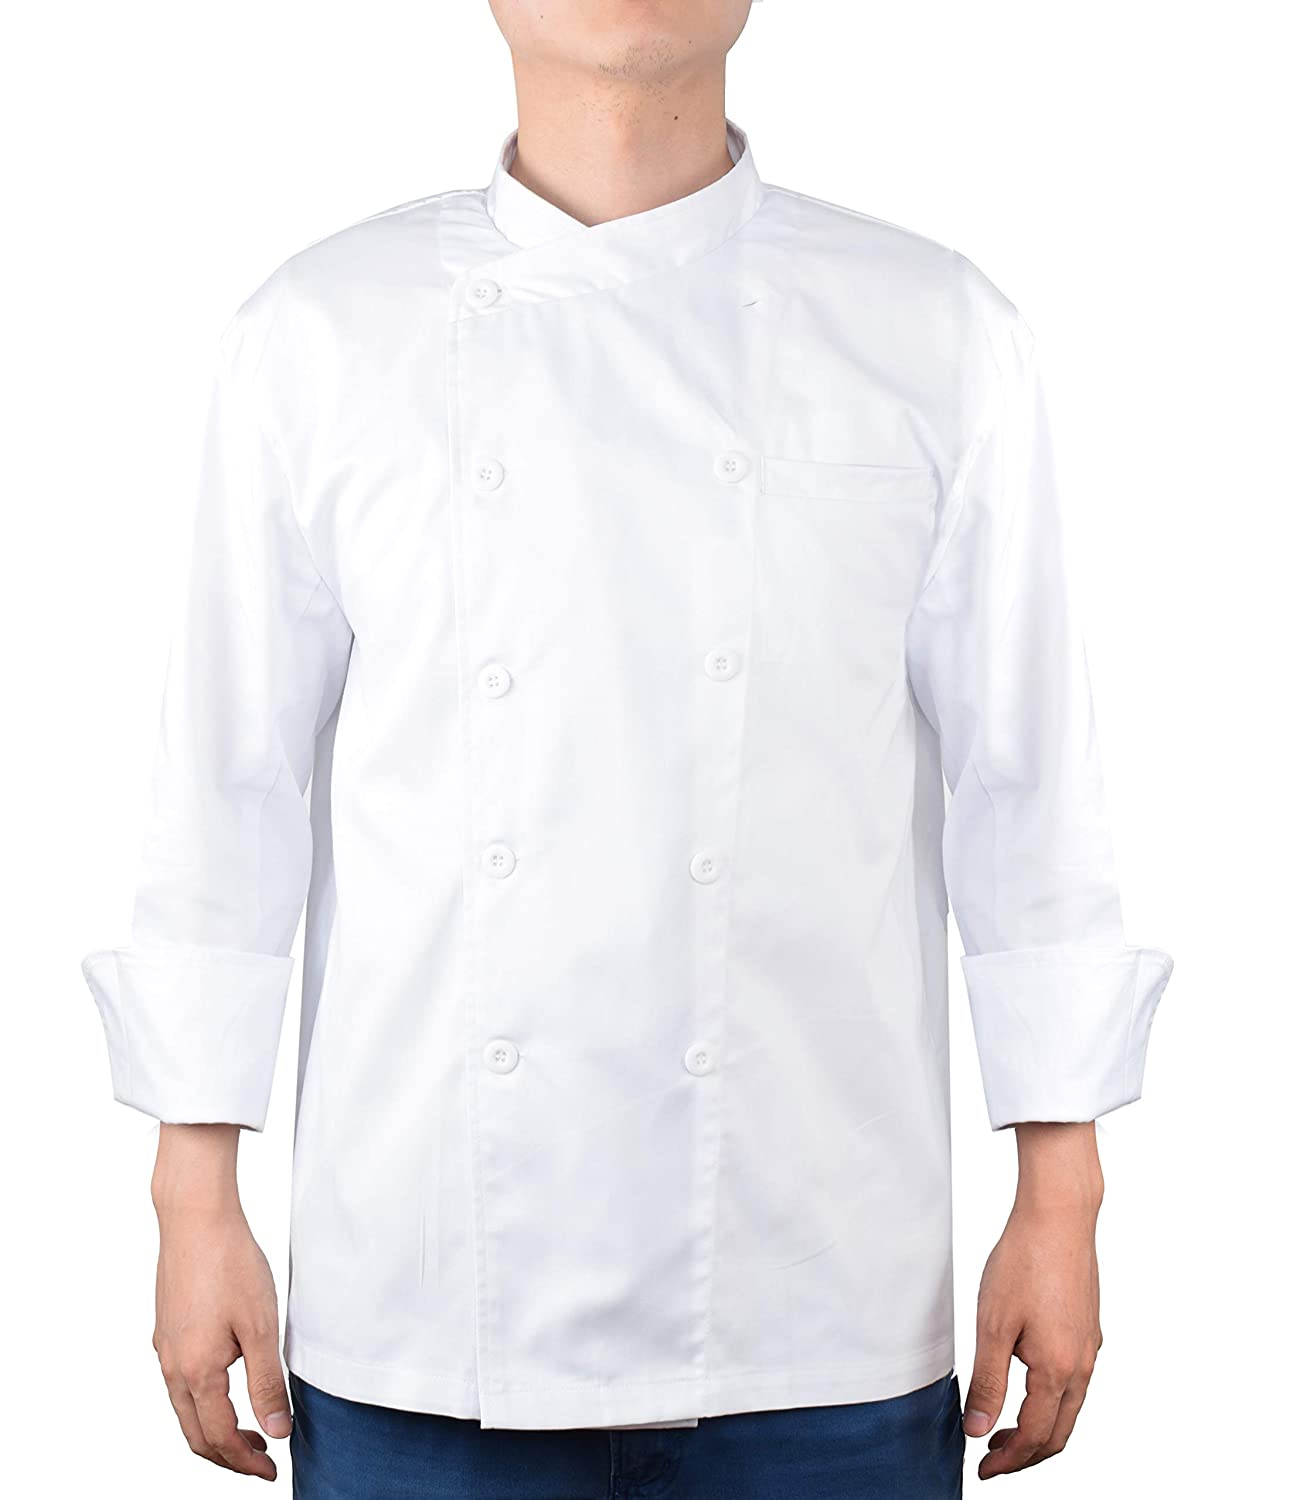 Amazon.com: Nanxson Unisex Chef Jacket Kitchen Hotel Long ...